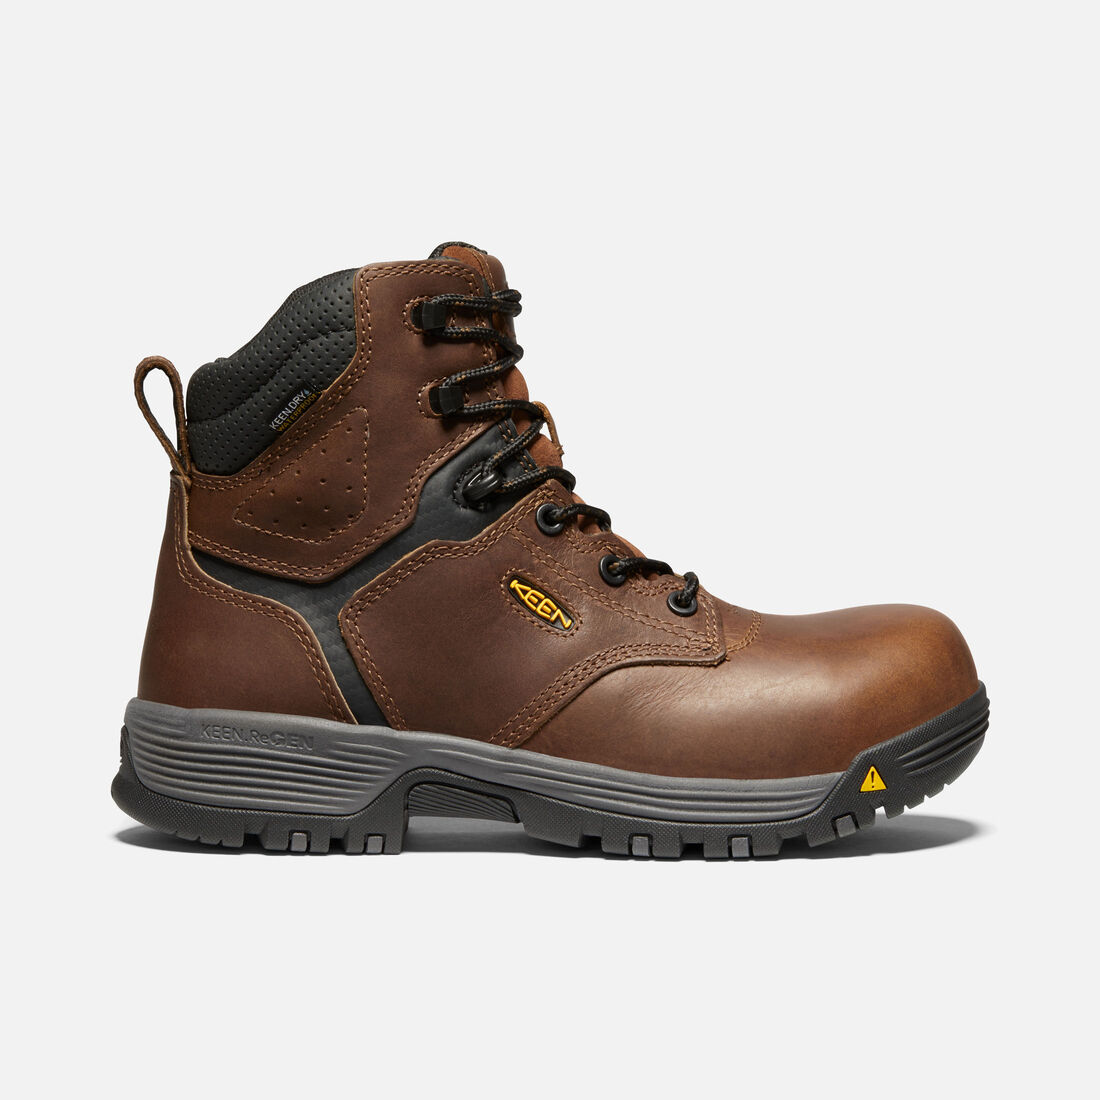 """Women's Chicago 6"""" Waterproof Boot (Carbon-fiber Toe) in Tobacco/Black - large view."""